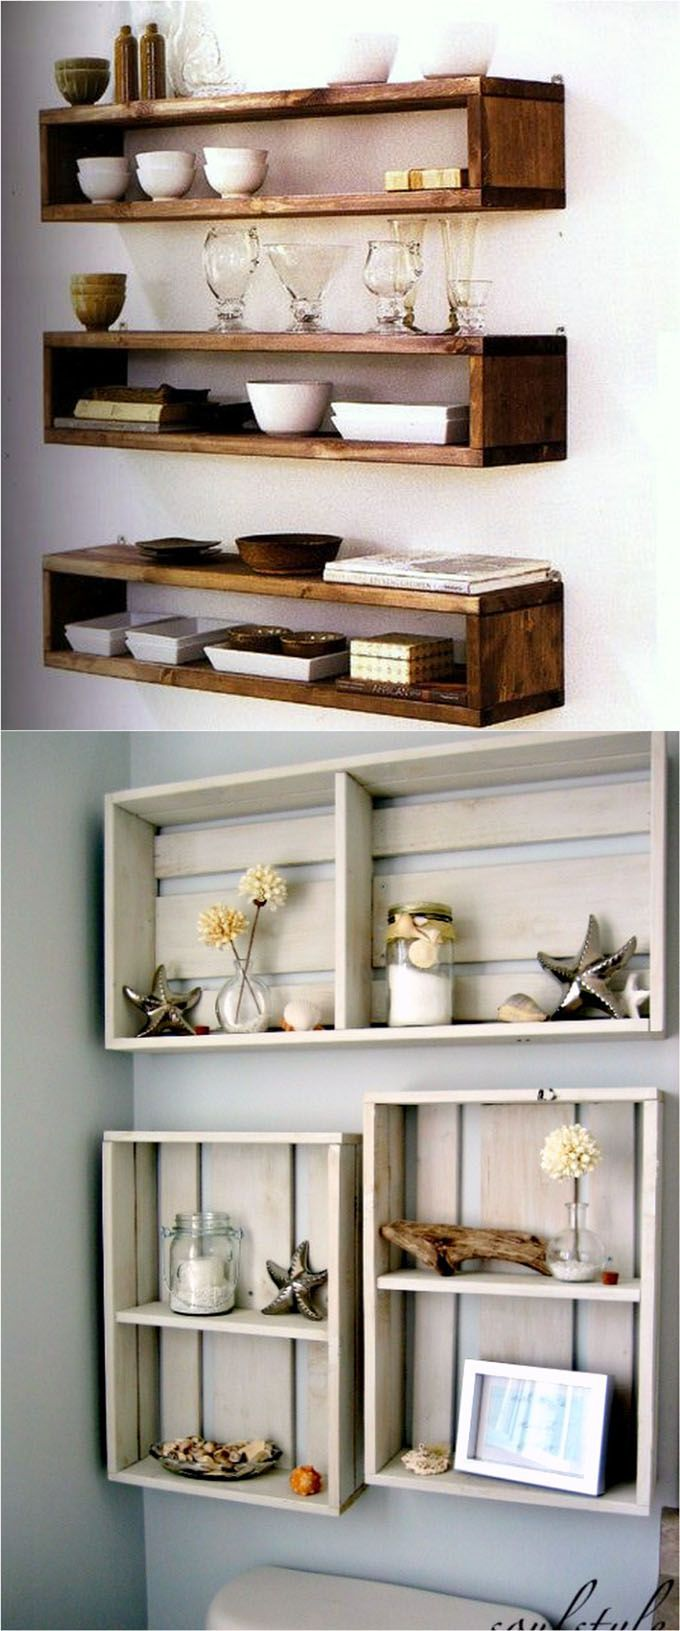 16 easy tutorials on building beautiful floating shelves and wall shelves! Check...